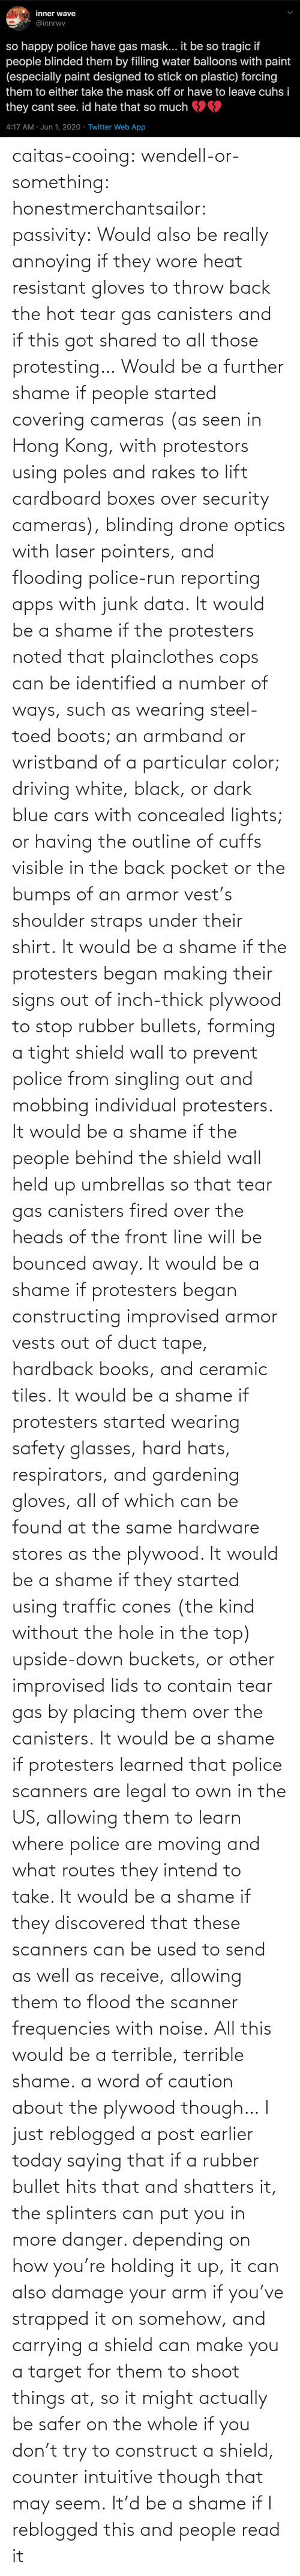 All Of: caitas-cooing:  wendell-or-something: honestmerchantsailor:  passivity: Would also be really annoying if they wore heat resistant gloves to throw back the hot tear gas canisters and if this got shared to all those protesting… Would be a further shame if people started covering cameras (as seen in Hong Kong, with protestors using poles and rakes to lift cardboard boxes over security cameras), blinding drone optics with laser pointers, and flooding police-run reporting apps with junk data. It would be a shame if the protesters noted that plainclothes cops can be identified a number of ways, such as wearing steel-toed boots; an armband or wristband of a particular color; driving white, black, or dark blue cars with concealed lights; or having the outline of cuffs visible in the back pocket or the bumps of an armor vest's shoulder straps under their shirt. It would be a shame if the protesters began making their signs out of inch-thick plywood to stop rubber bullets, forming a tight shield wall to prevent police from singling out and mobbing individual protesters. It would be a shame if the people behind the shield wall held up umbrellas so that tear gas canisters fired over the heads of the front line will be bounced away. It would be a shame if protesters began constructing improvised armor vests out of duct tape, hardback books, and ceramic tiles. It would be a shame if protesters started wearing safety glasses, hard hats, respirators, and gardening gloves, all of which can be found at the same hardware stores as the plywood. It would be a shame if they started using traffic cones (the kind without the hole in the top) upside-down buckets, or other improvised lids to contain tear gas by placing them over the canisters. It would be a shame if protesters learned that police scanners are legal to own in the US, allowing them to learn where police are moving and what routes they intend to take. It would be a shame if they discovered that these scanners can be used to send as well as receive, allowing them to flood the scanner frequencies with noise. All this would be a terrible, terrible shame.    a word of caution about the plywood though… I just reblogged a post earlier today saying that if a rubber bullet hits that and shatters it, the splinters can put you in more danger. depending on how you're holding it up, it can also damage your arm if you've strapped it on somehow, and carrying a shield can make you a target for them to shoot things at, so it might actually be safer on the whole if you don't try to construct a shield, counter intuitive though that may seem.    It'd be a shame if I reblogged this and people read it